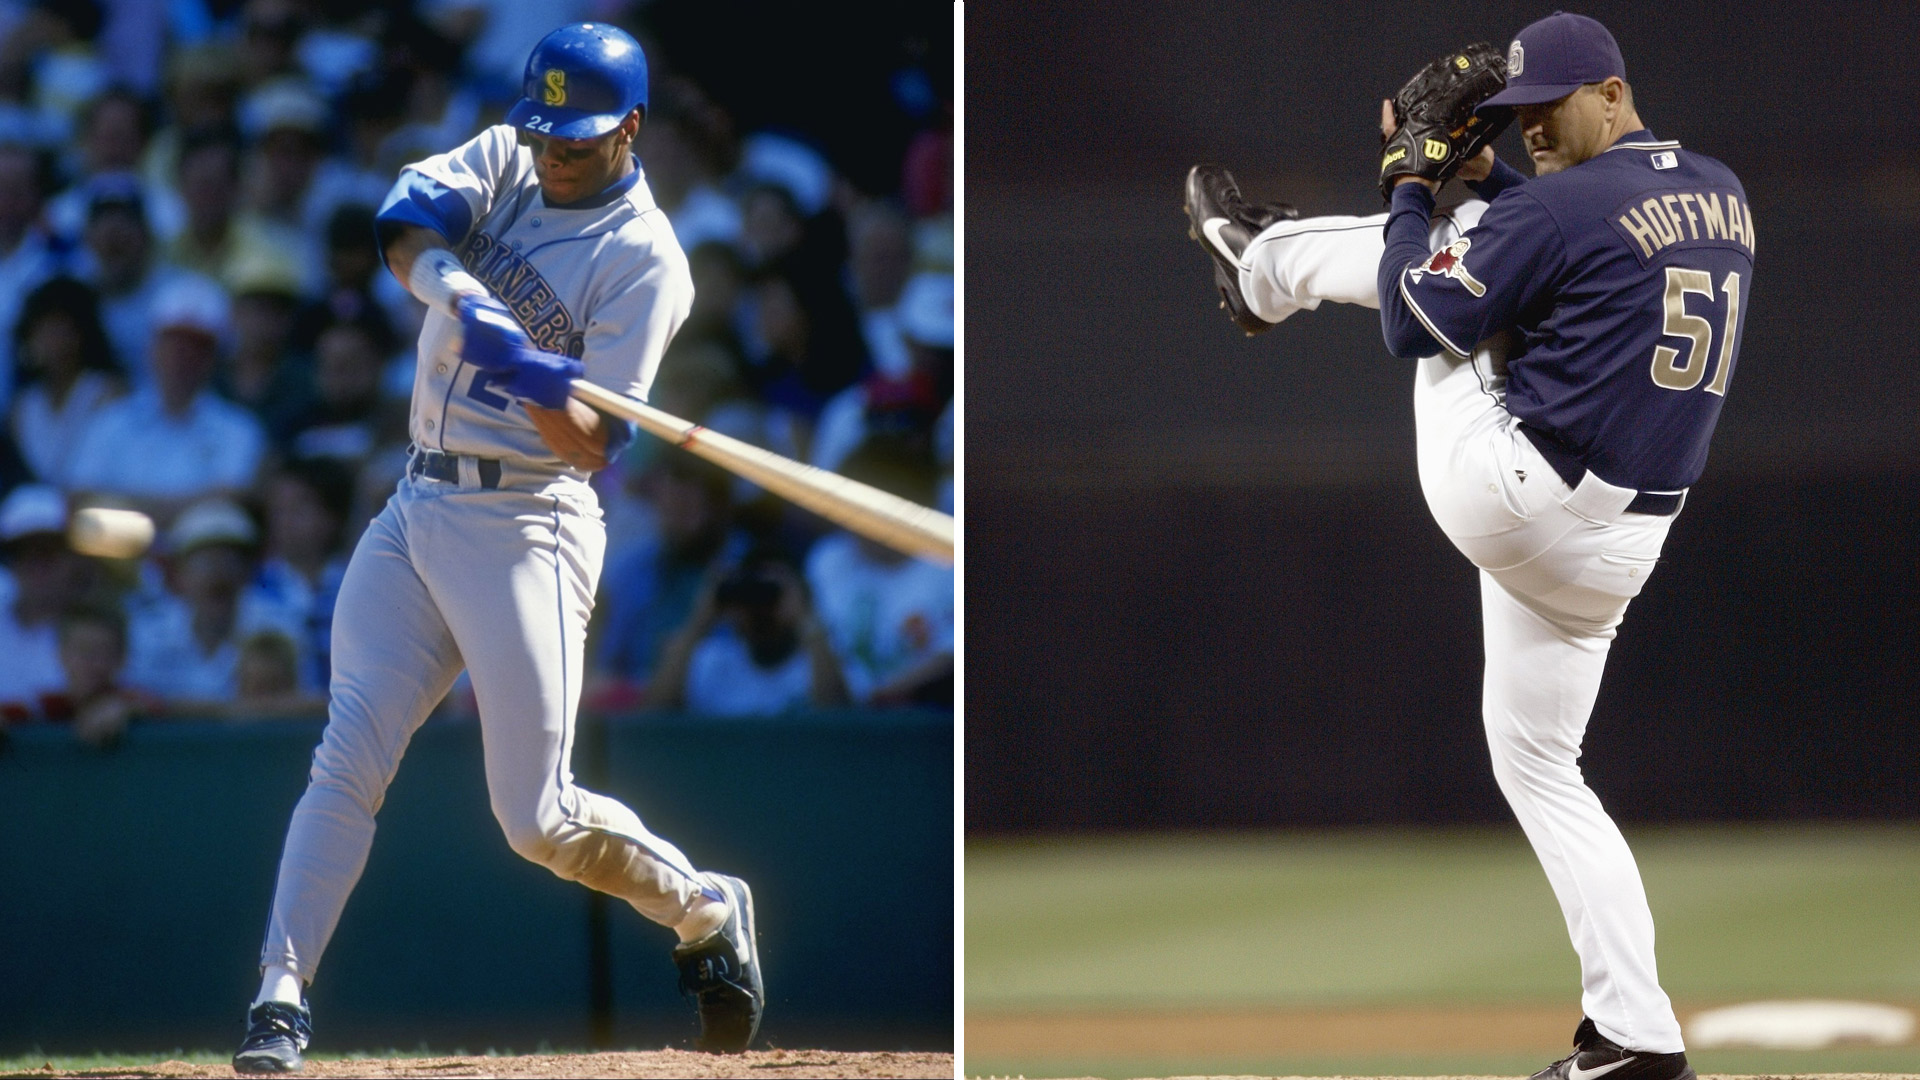 Griffey and Hoffman